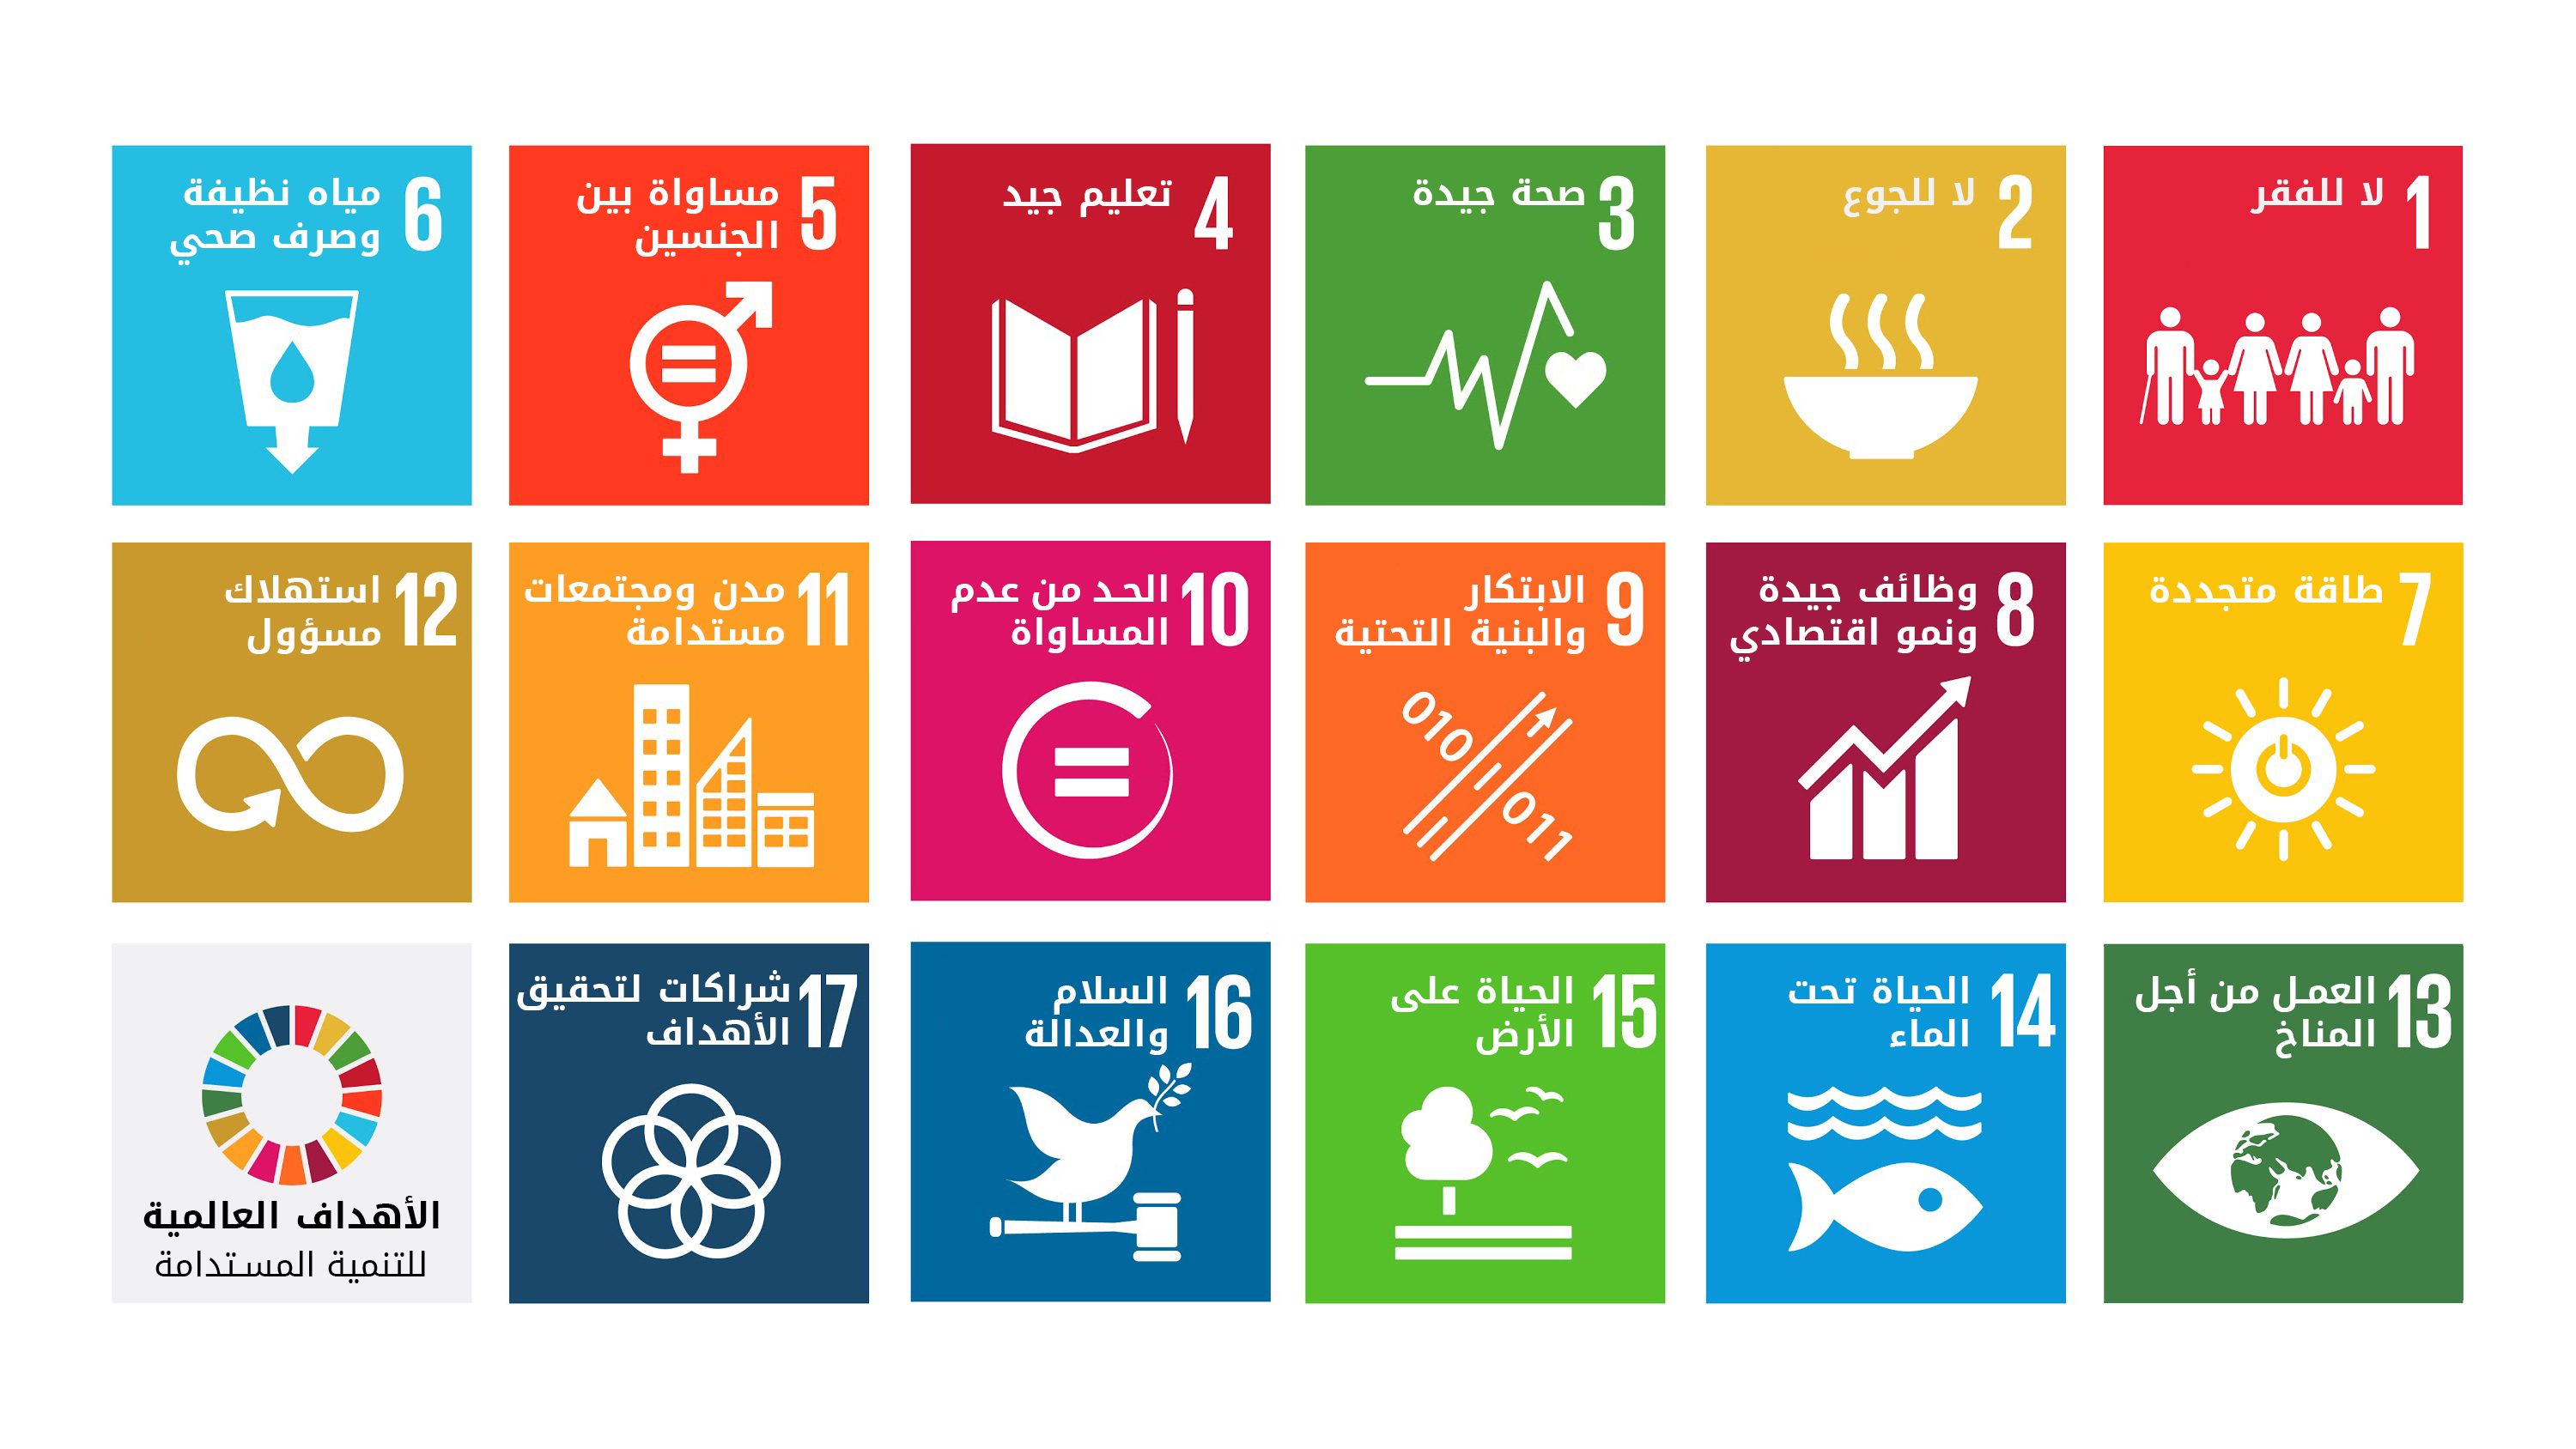 Global Goals for Sustainable Development Arabic